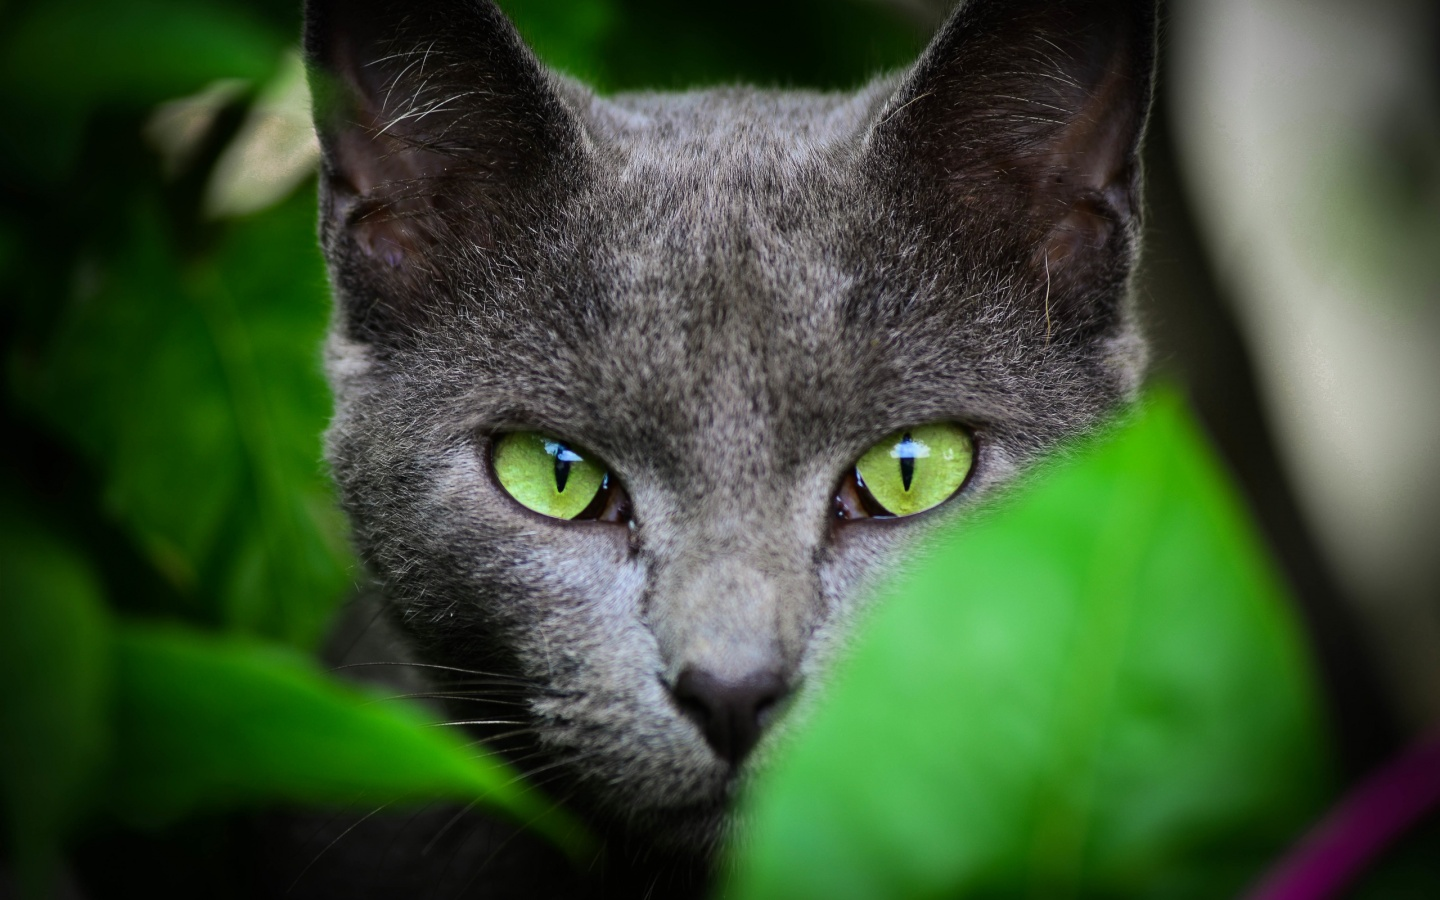 Black Cat Green Eyes Color Wallpapers   1440x900   341546 1440x900